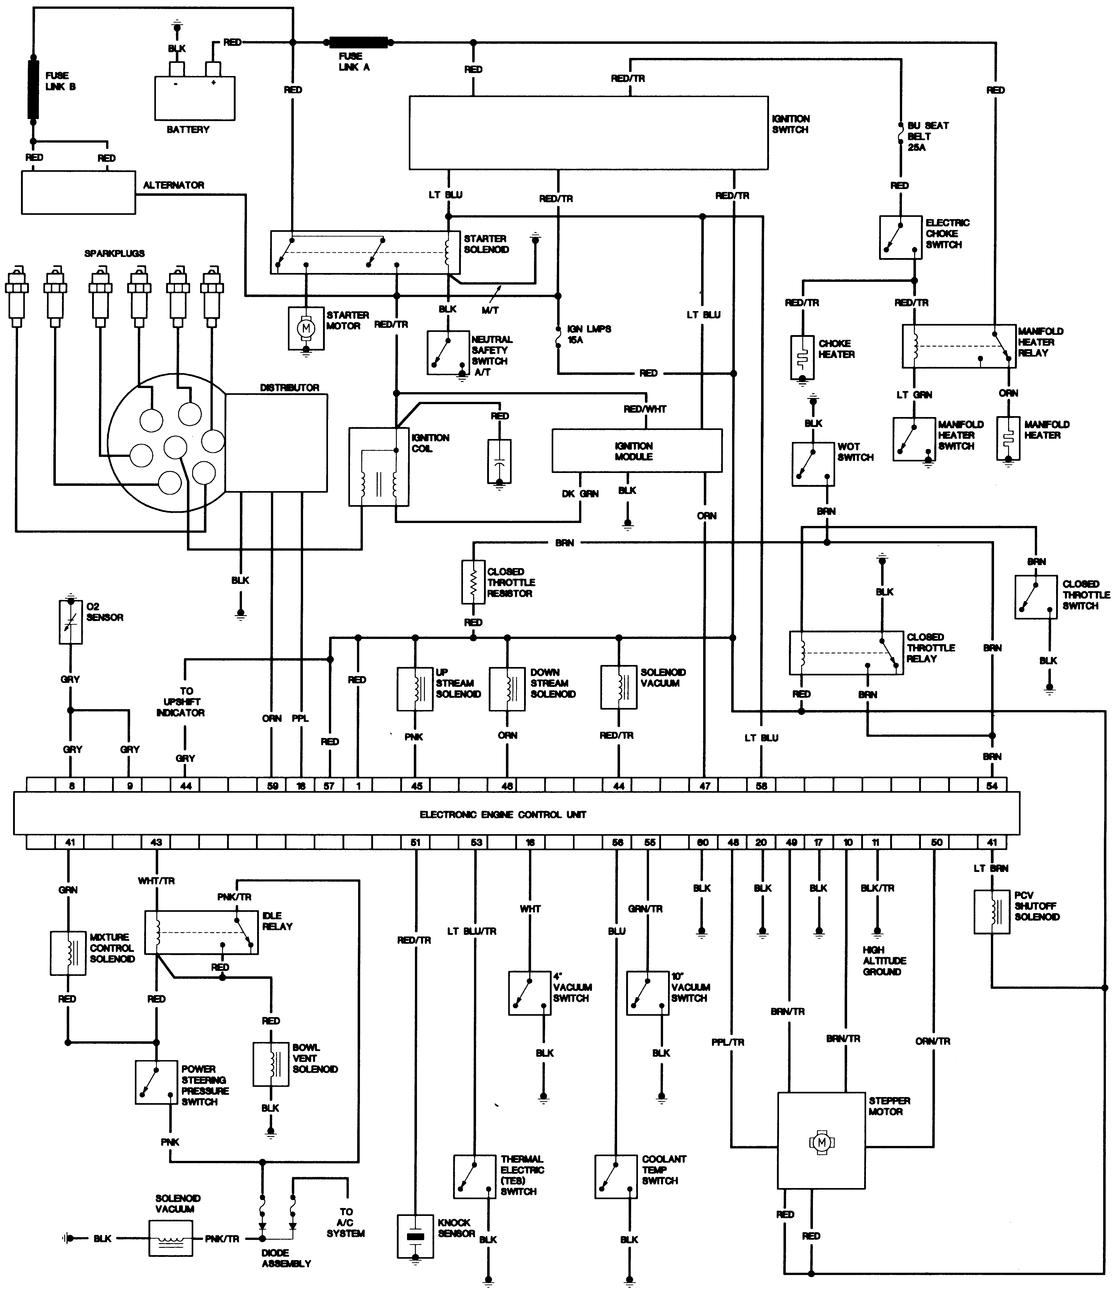 jeep cherokee intake manifold diagram  jeep  free engine